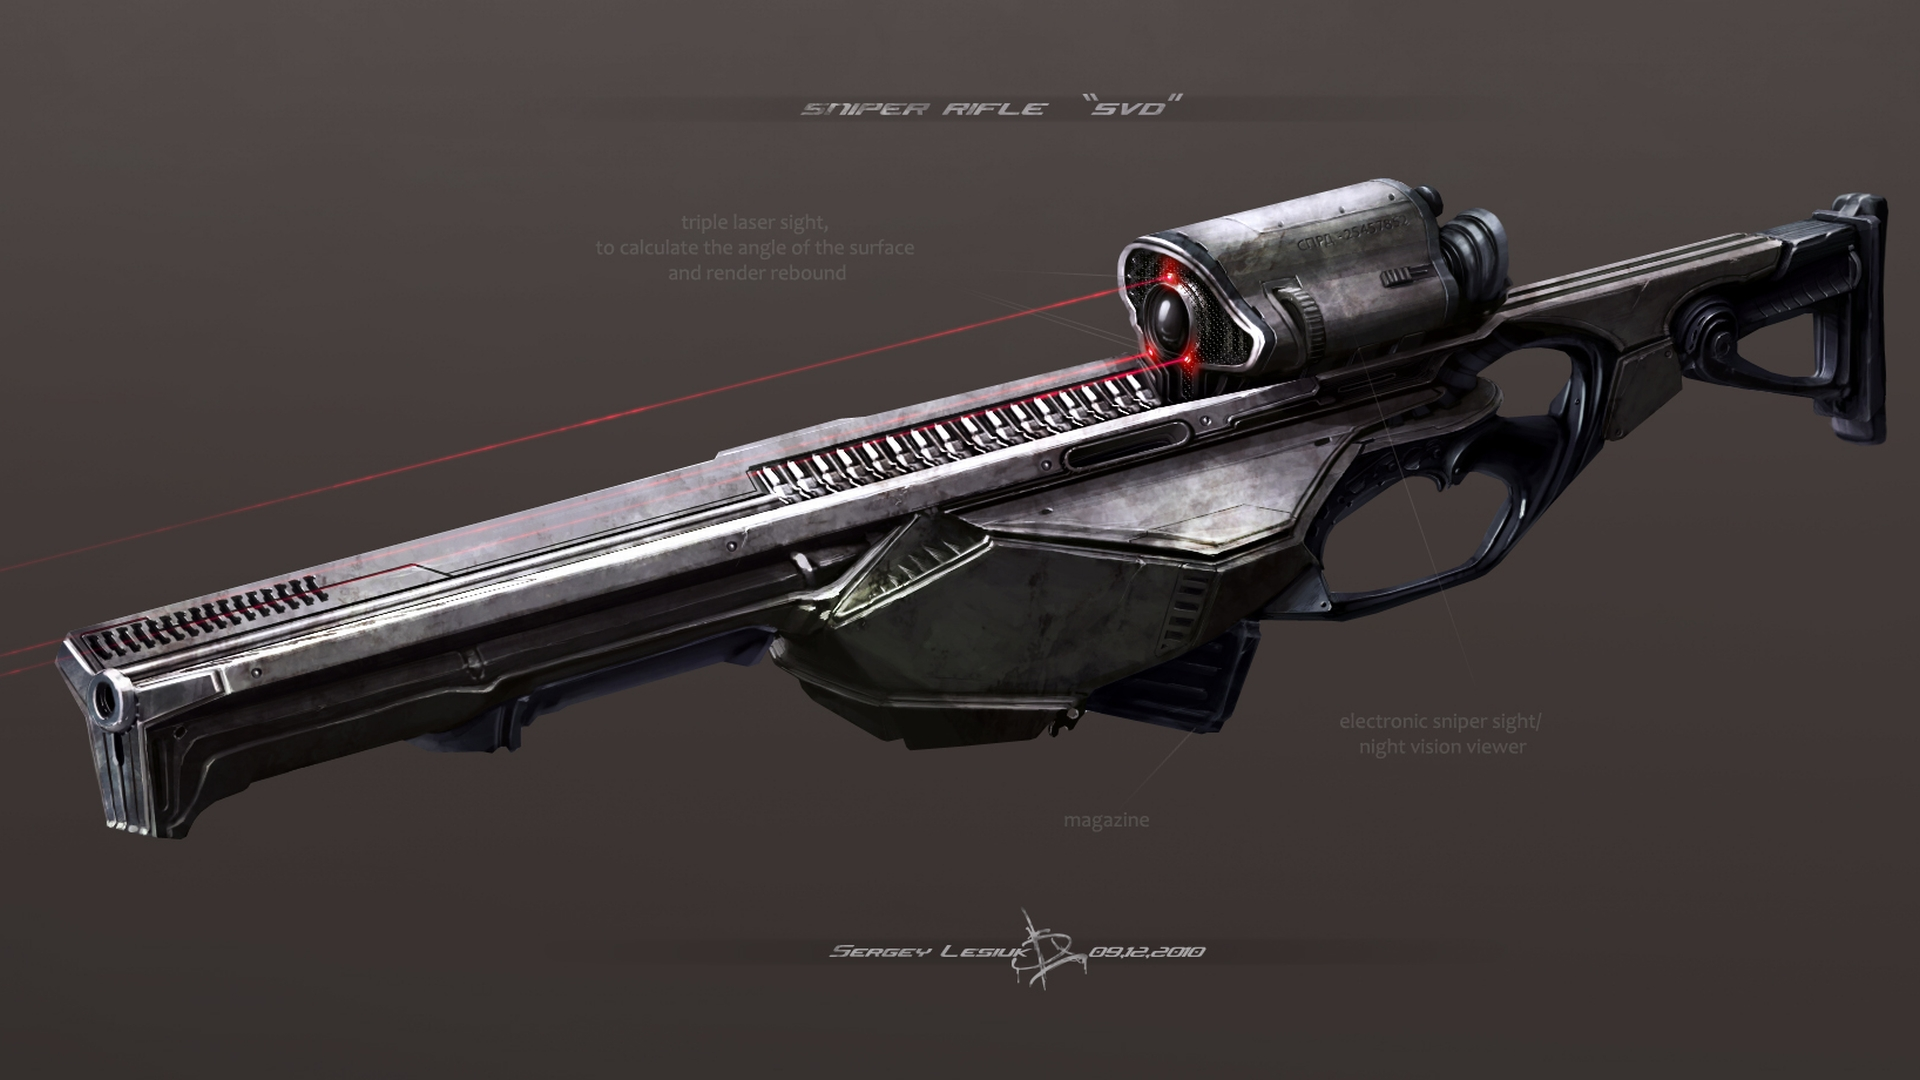 Weapon Full Hd Wallpaper And Background Image 1920x1080